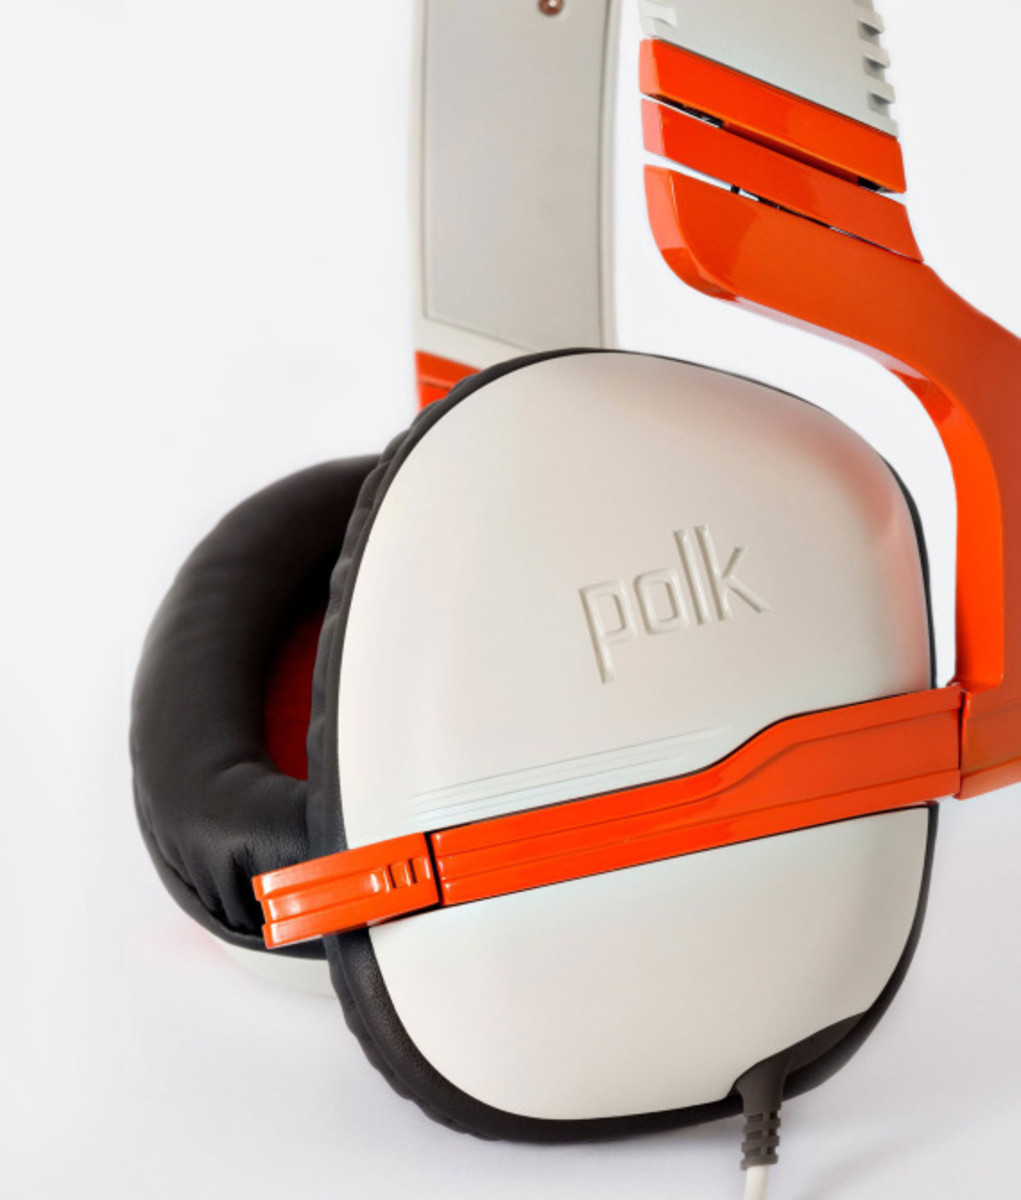 polk-striker-zx-xbox-one-gaming-headphones-02